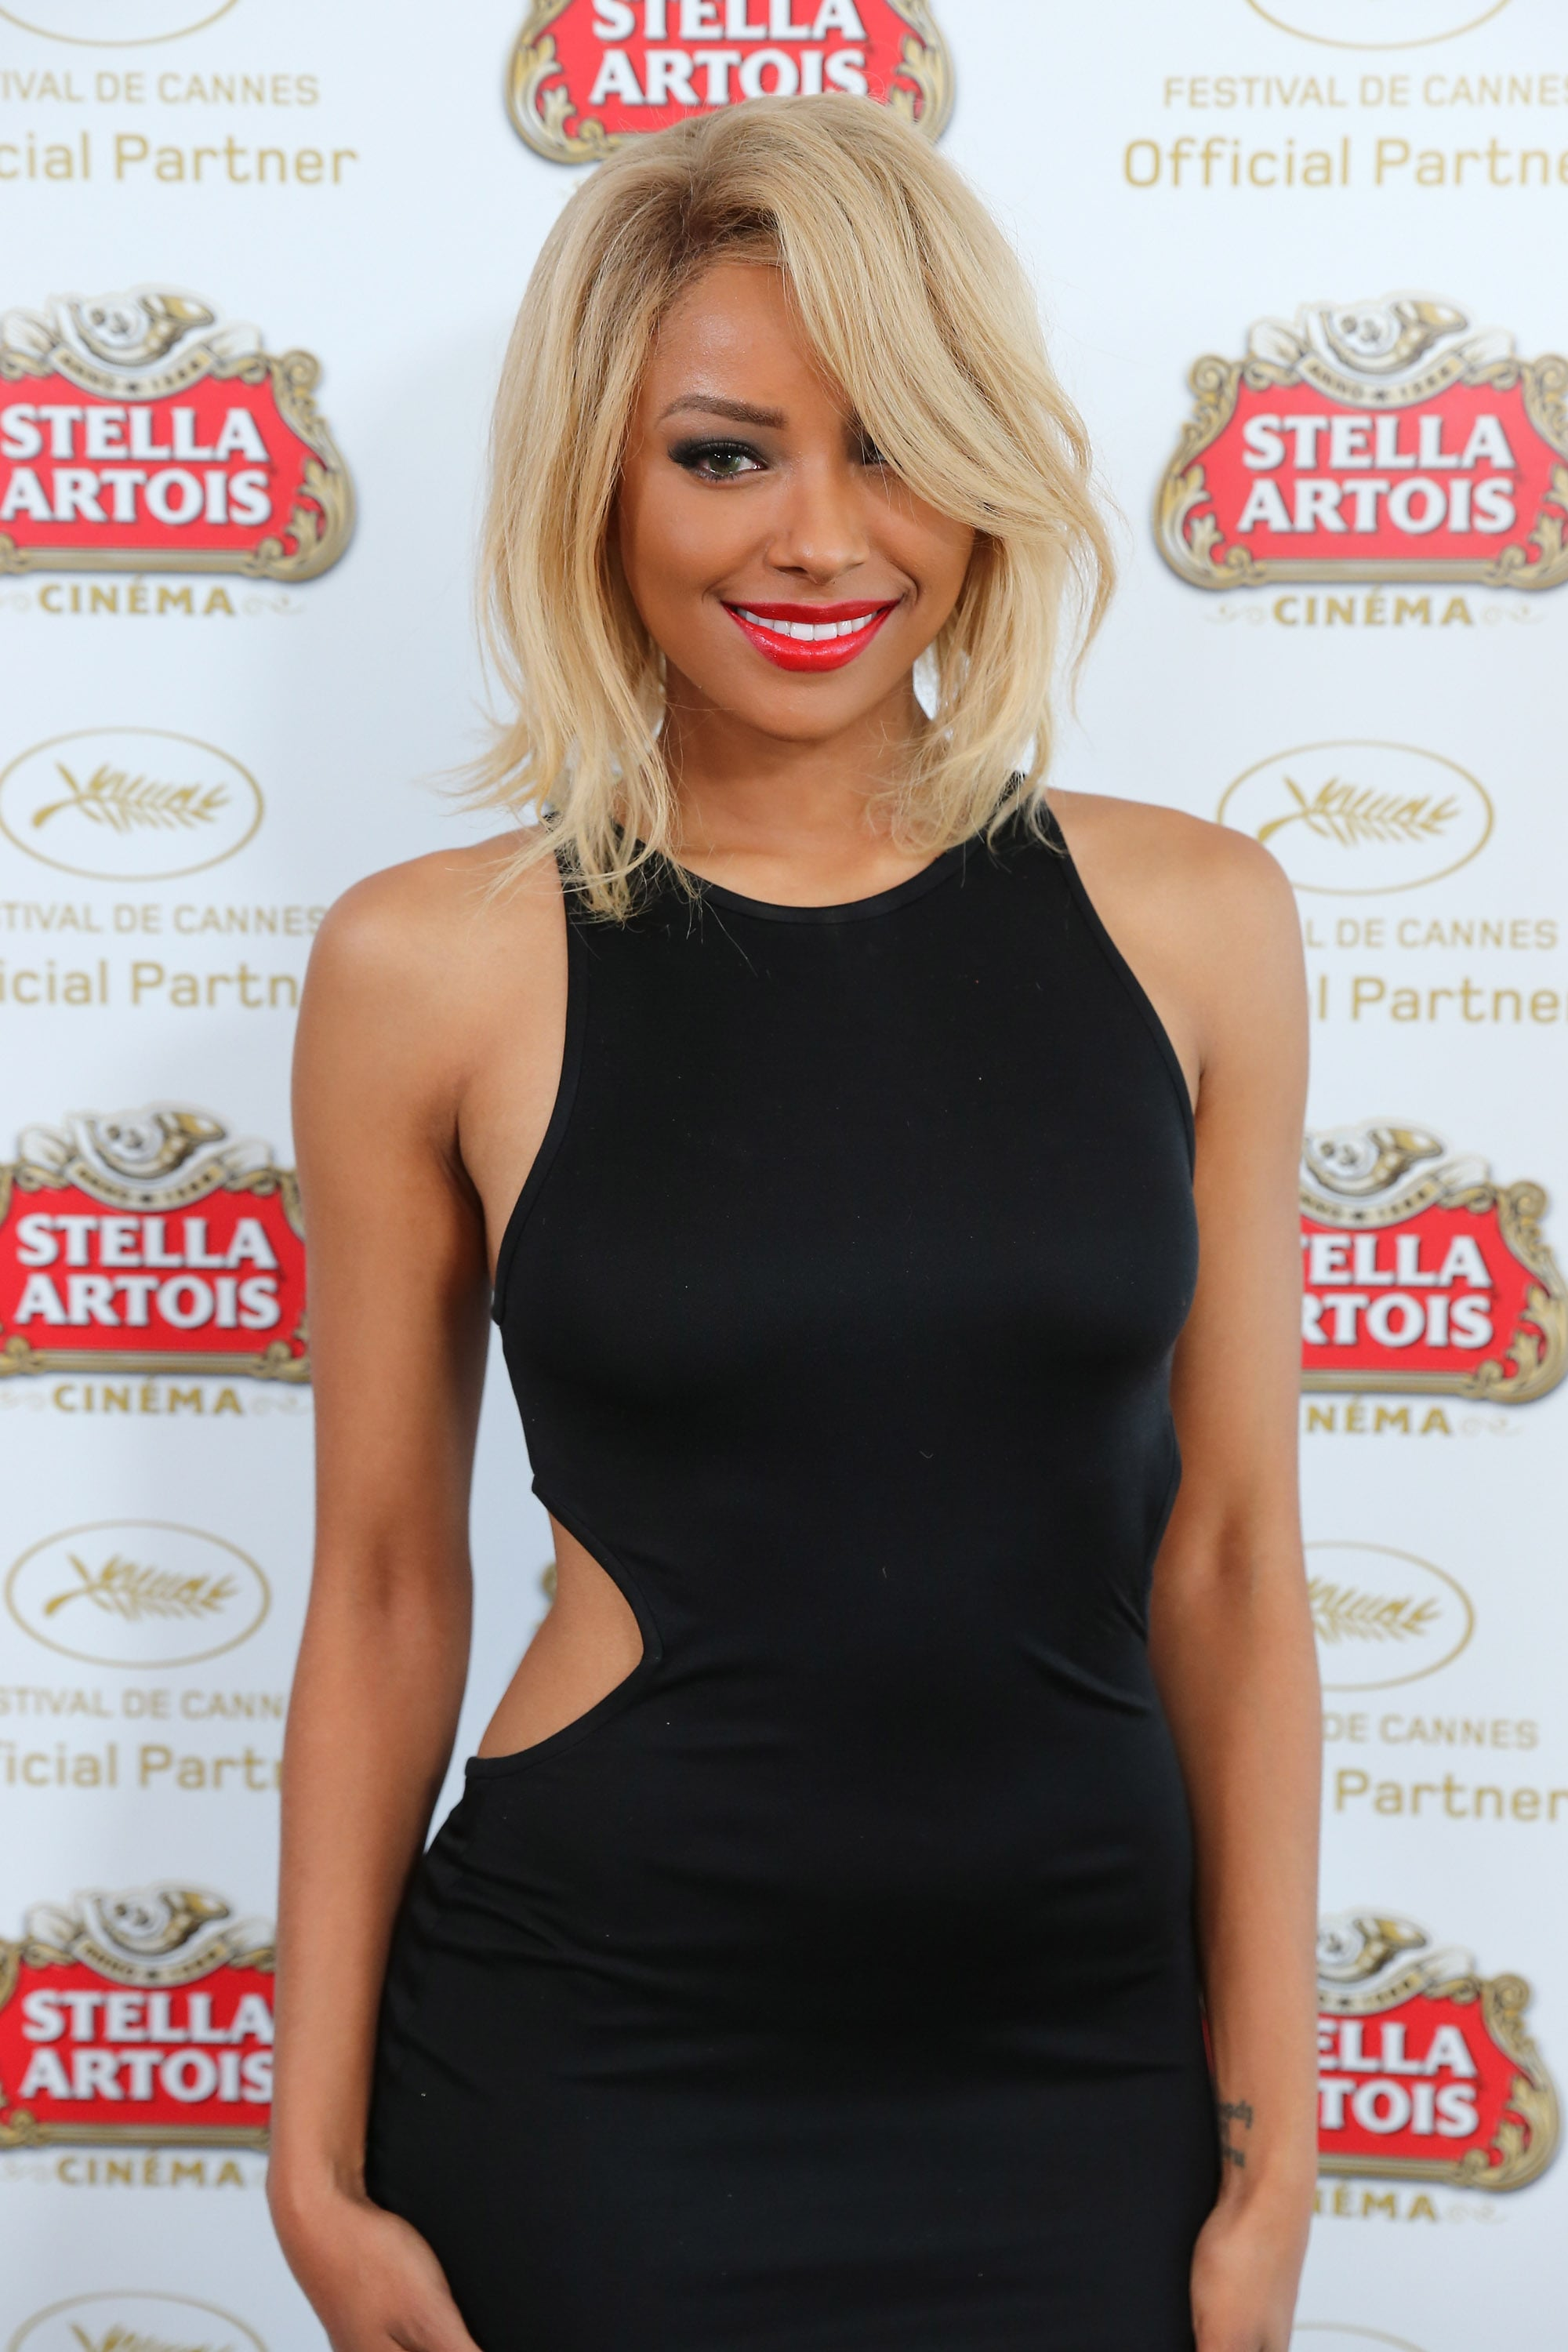 Kat Graham showed off her blond locks and bright red lipstick during a visit to the Stella Artois Suite at Cannes.